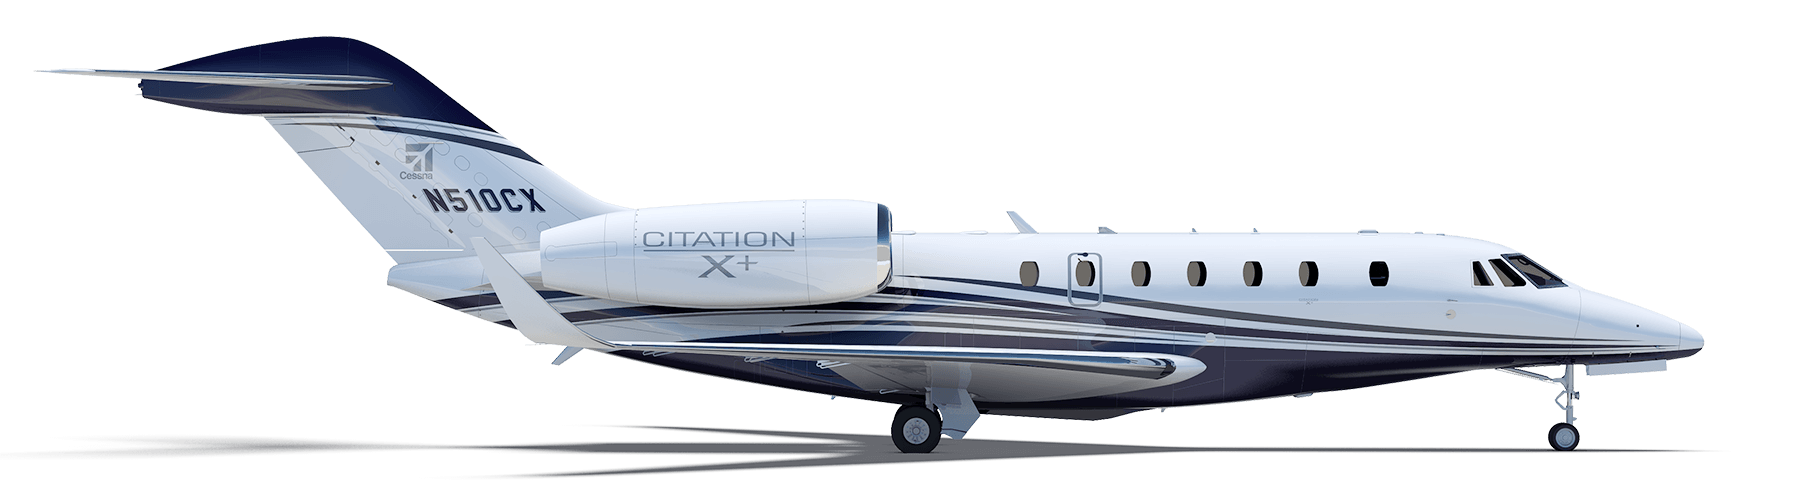 Miami Jet - Miami Aviation - Private Jet Listing - Jets For Sale